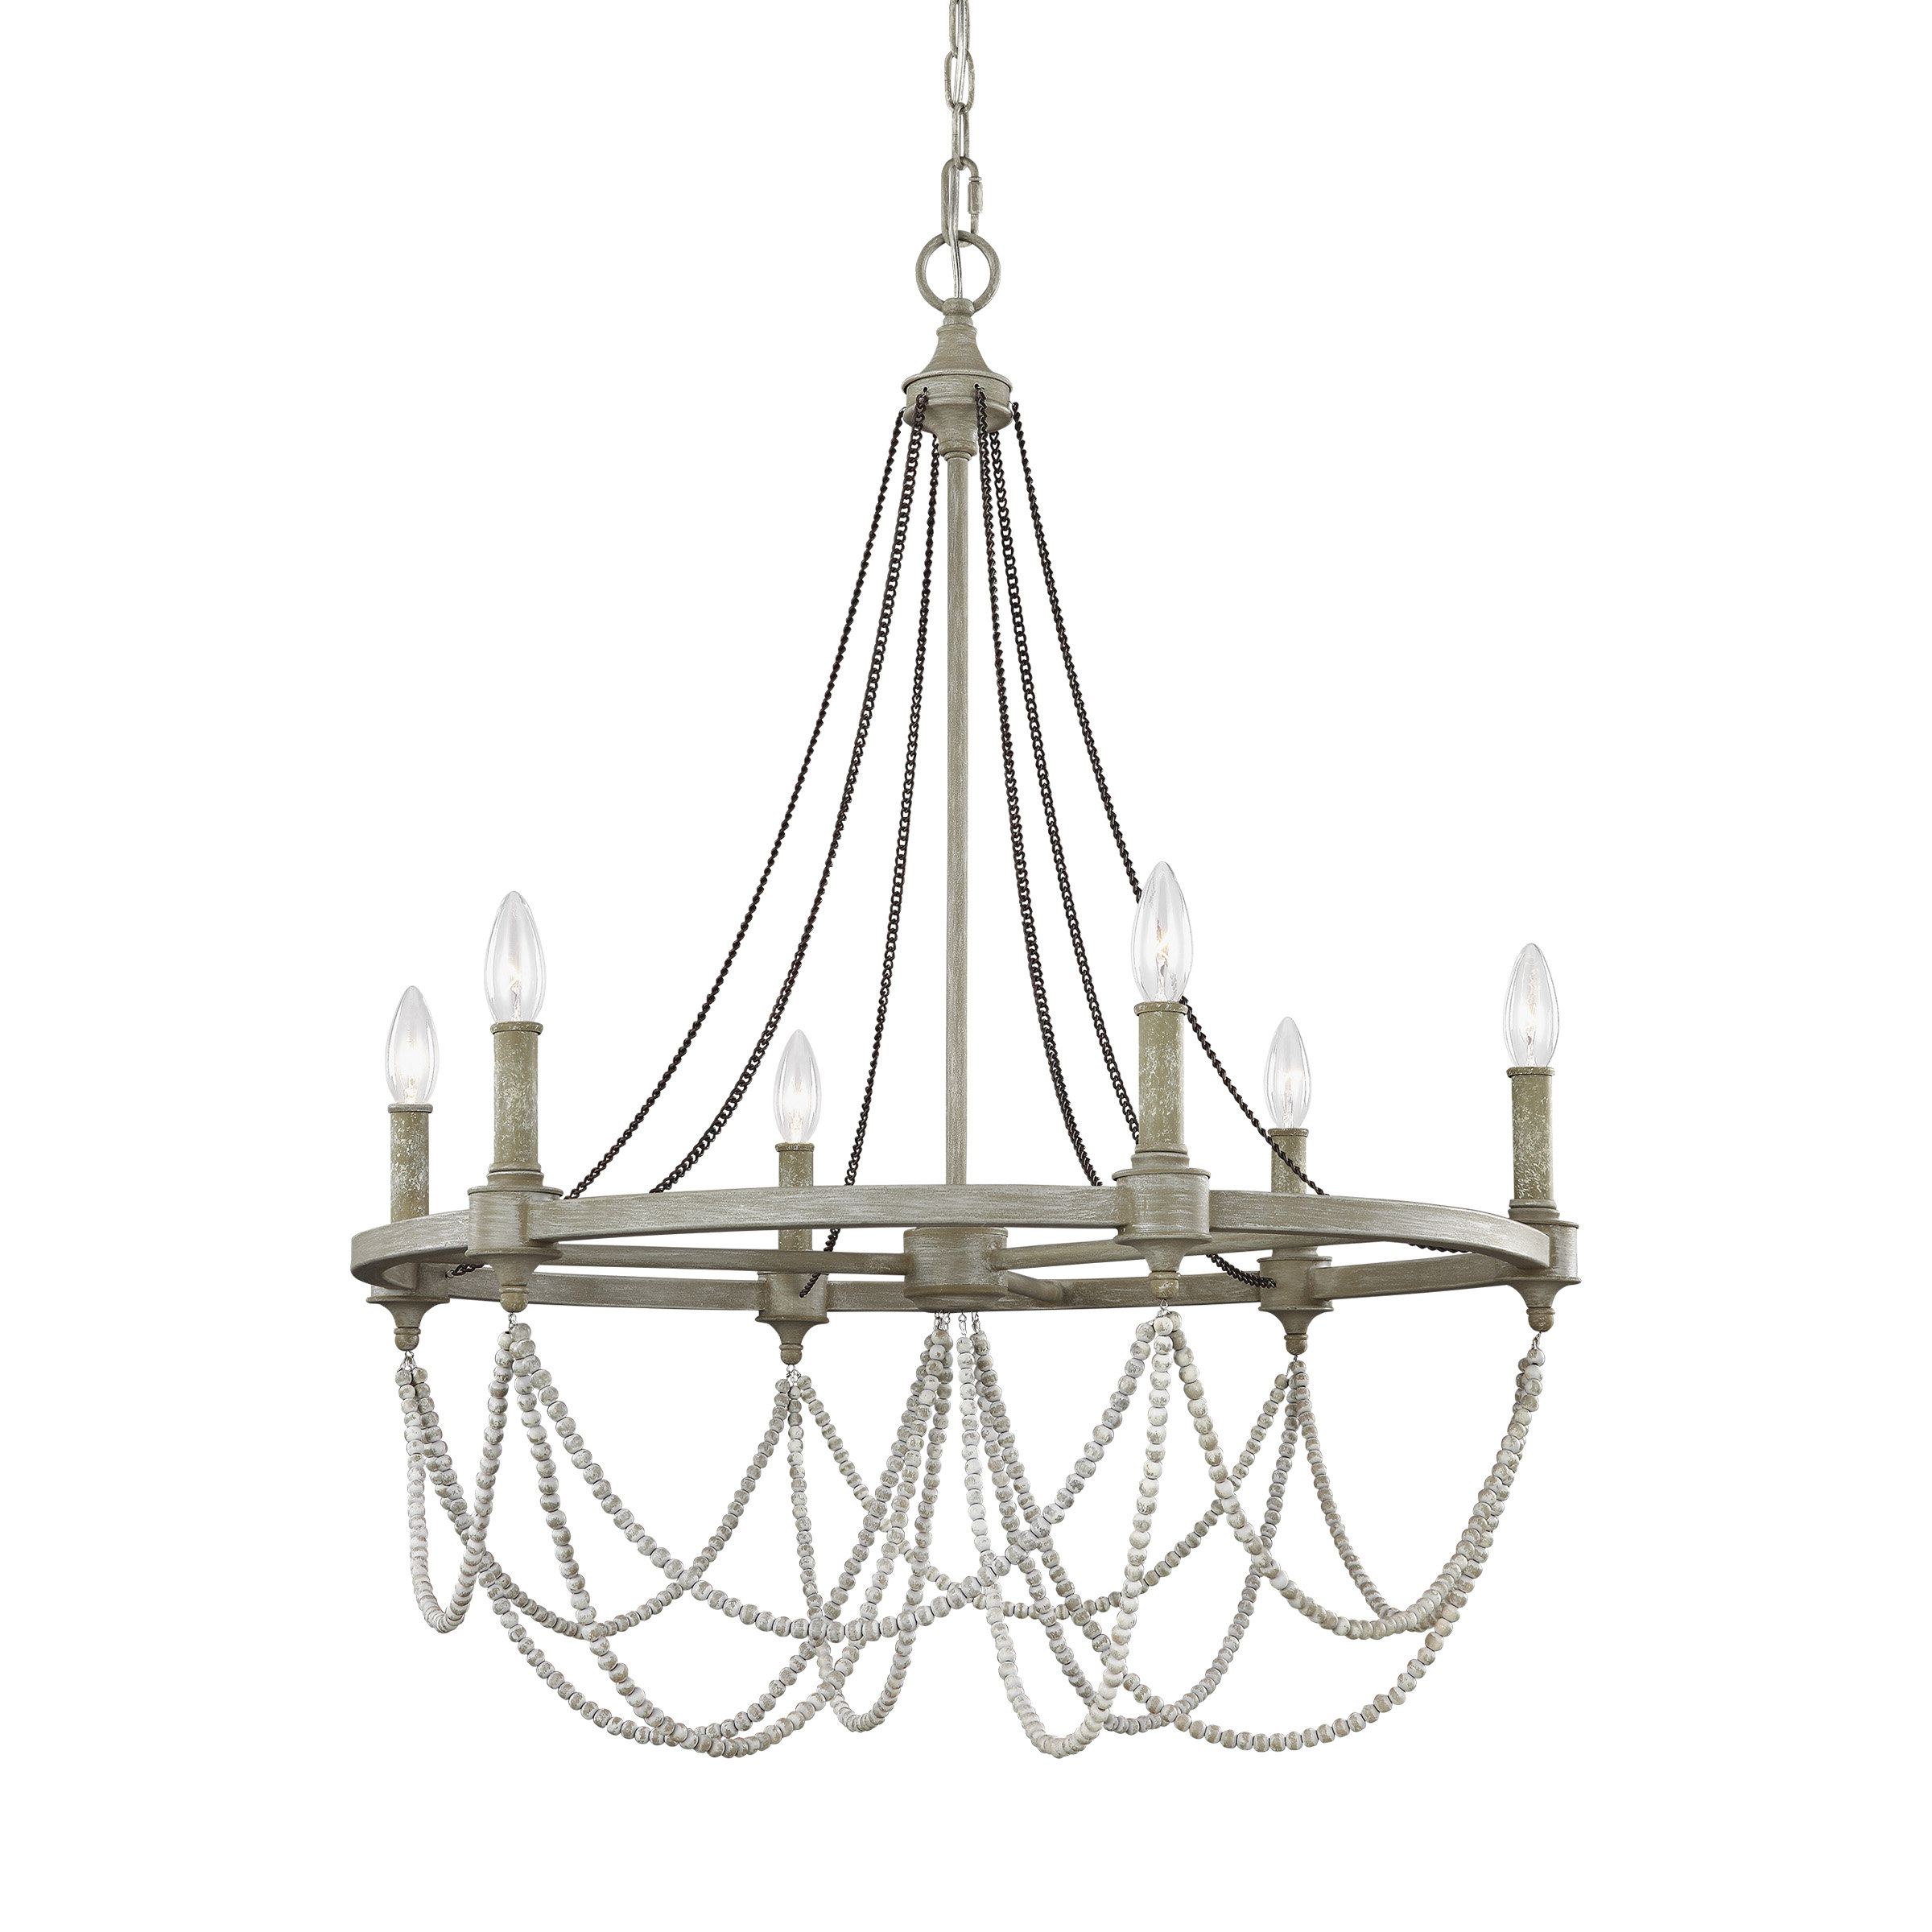 Fitzgibbon 6 Light Candle Style Chandelier With Regard To 2020 Diaz 6 Light Candle Style Chandeliers (View 10 of 20)